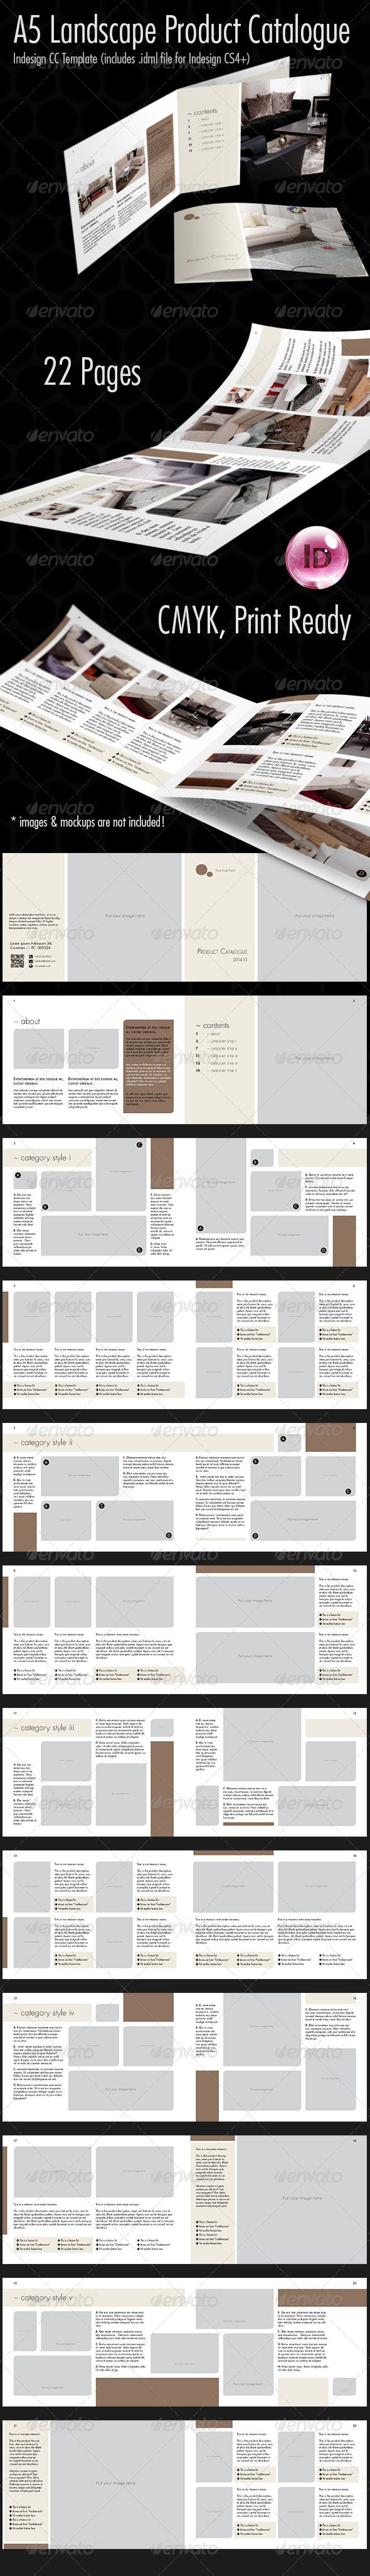 22 Pages Product Catalog Template